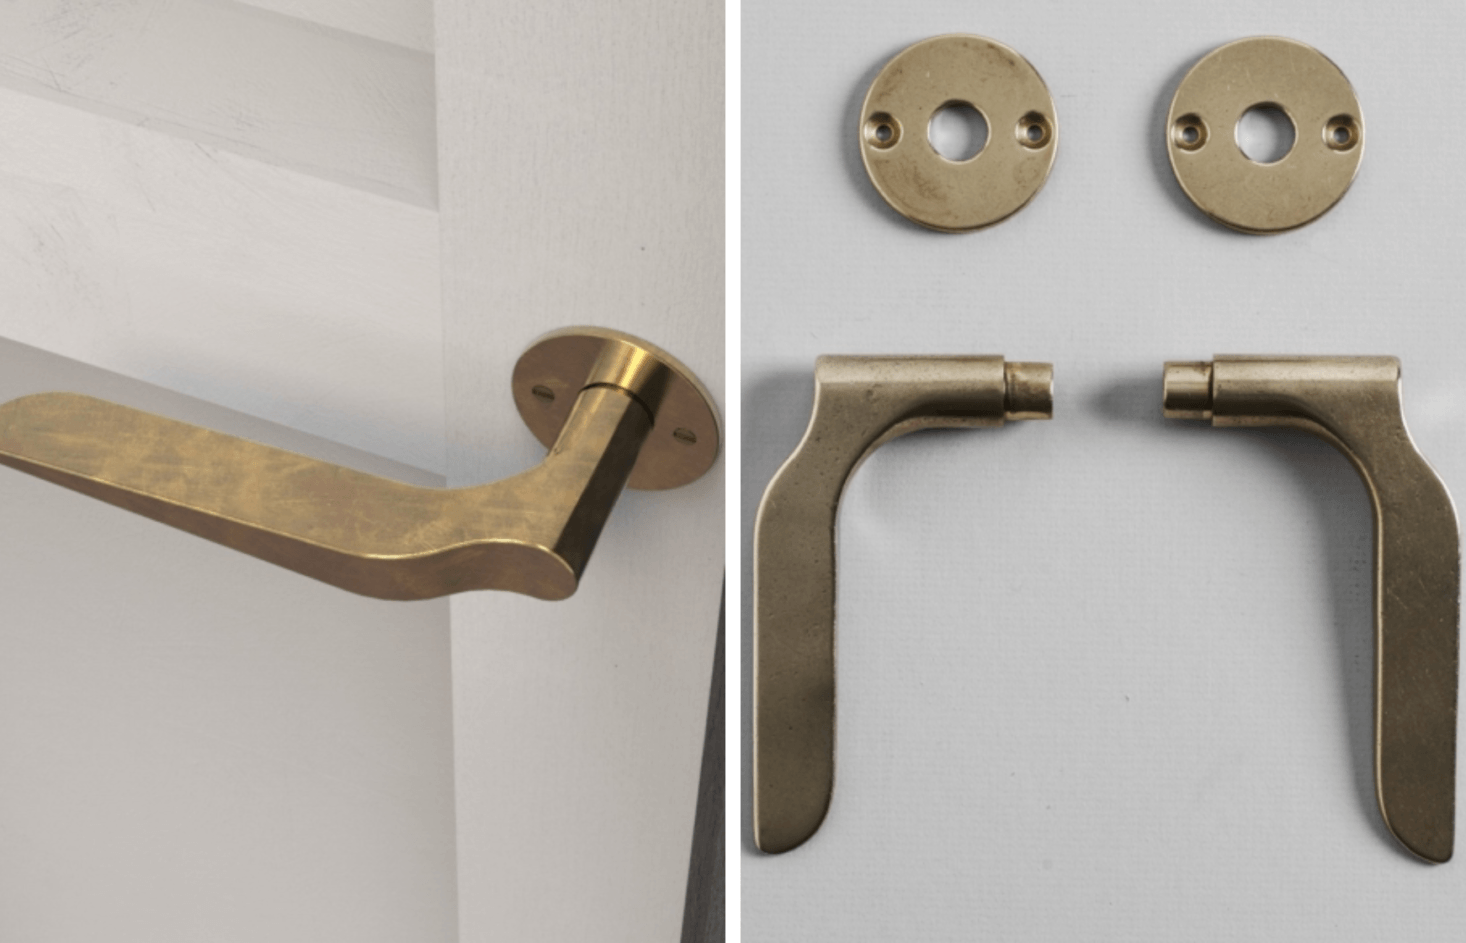 The Palais Lever Handle is available in high tensile brass or aluminum. Each handle is individually cast  from a wax positive, vibration polished, and machined; $3 per set of two handles, including rose.